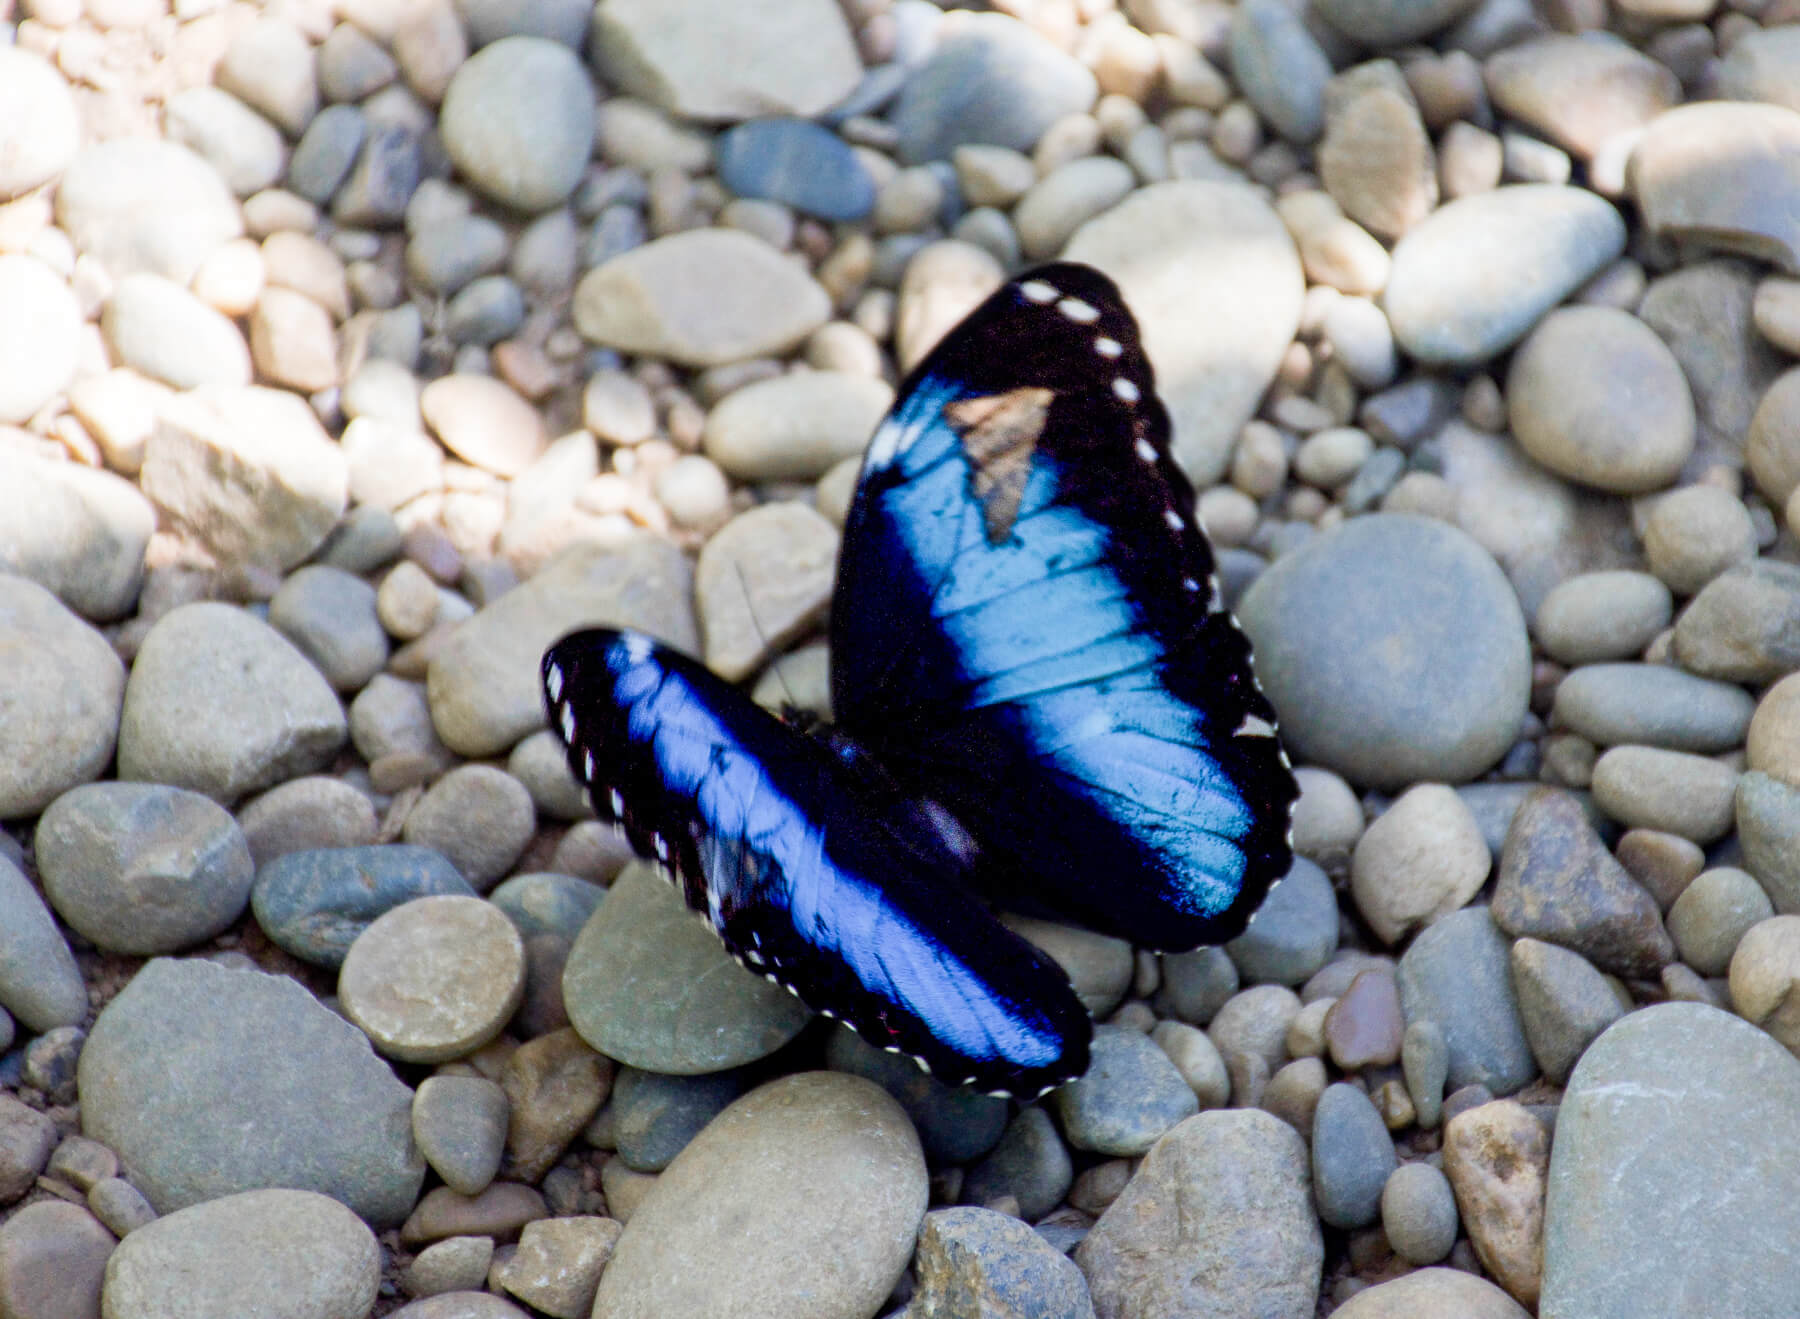 A black butterfly perched on some pebbles with a vibrant light blue stripe down the centre of each wing